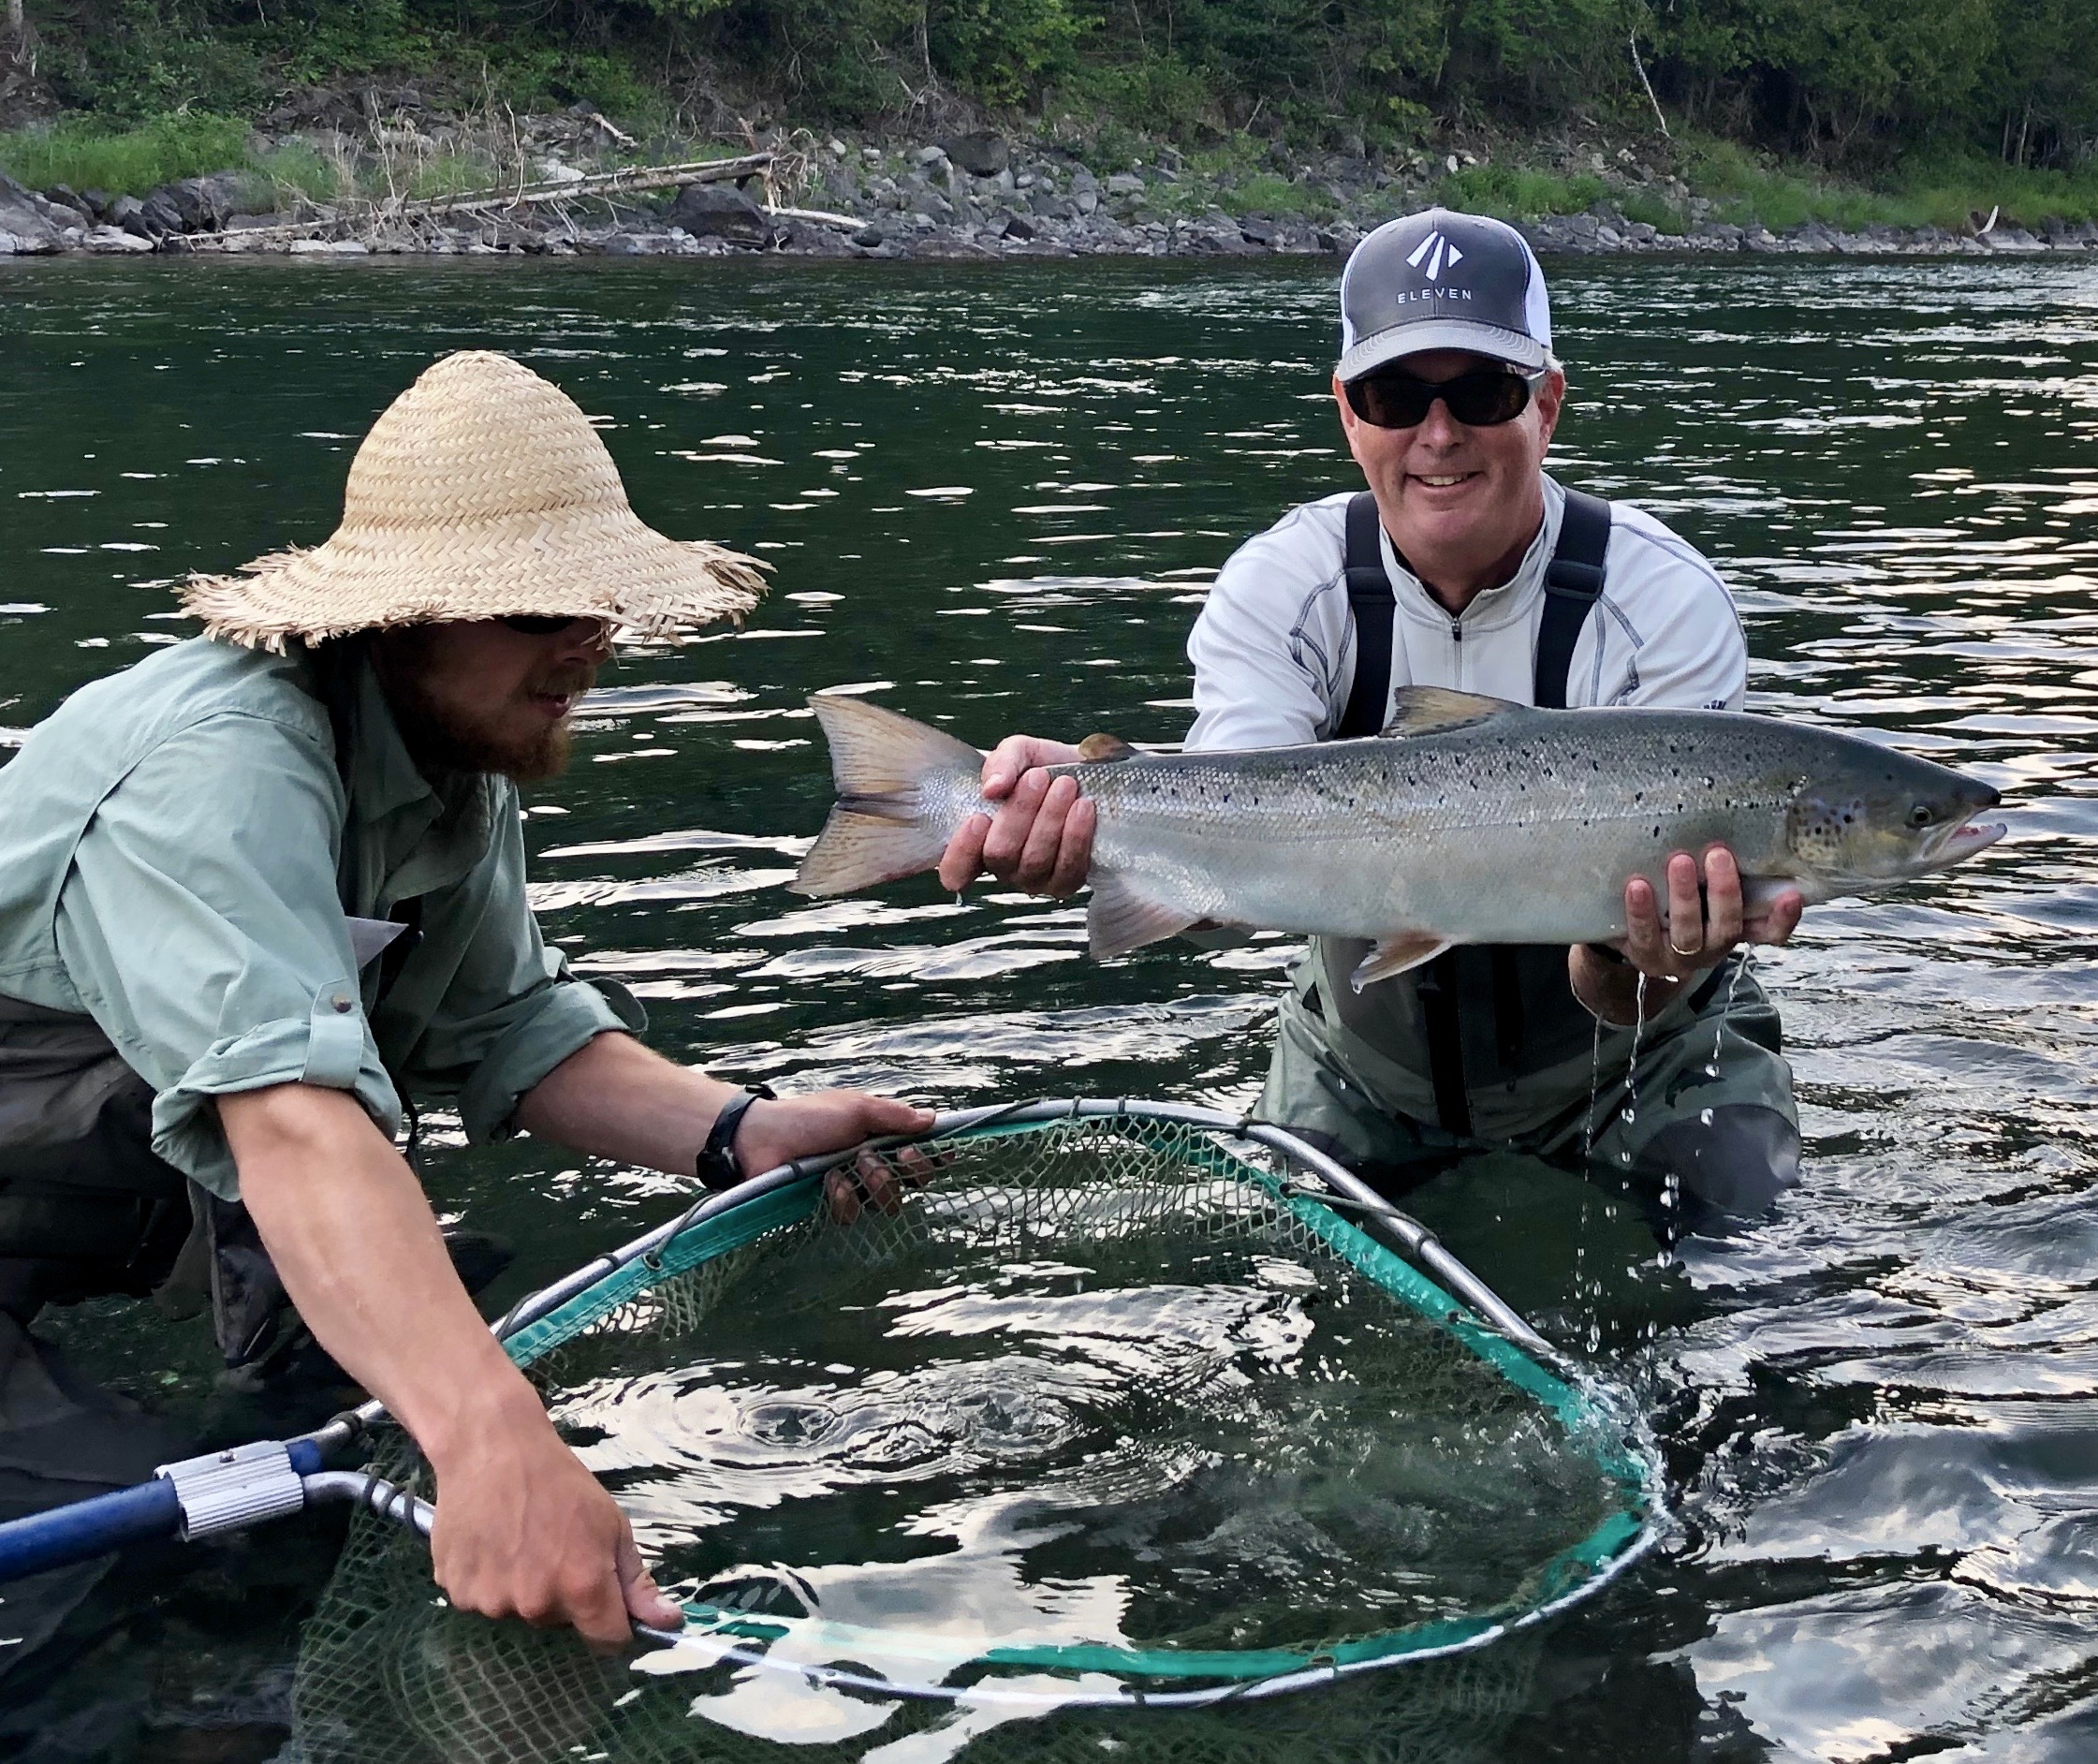 Edward Shugrue landed this Beautiful Bonaventure Salmon at Baker with his guide Olivier! Congratulations Edward!